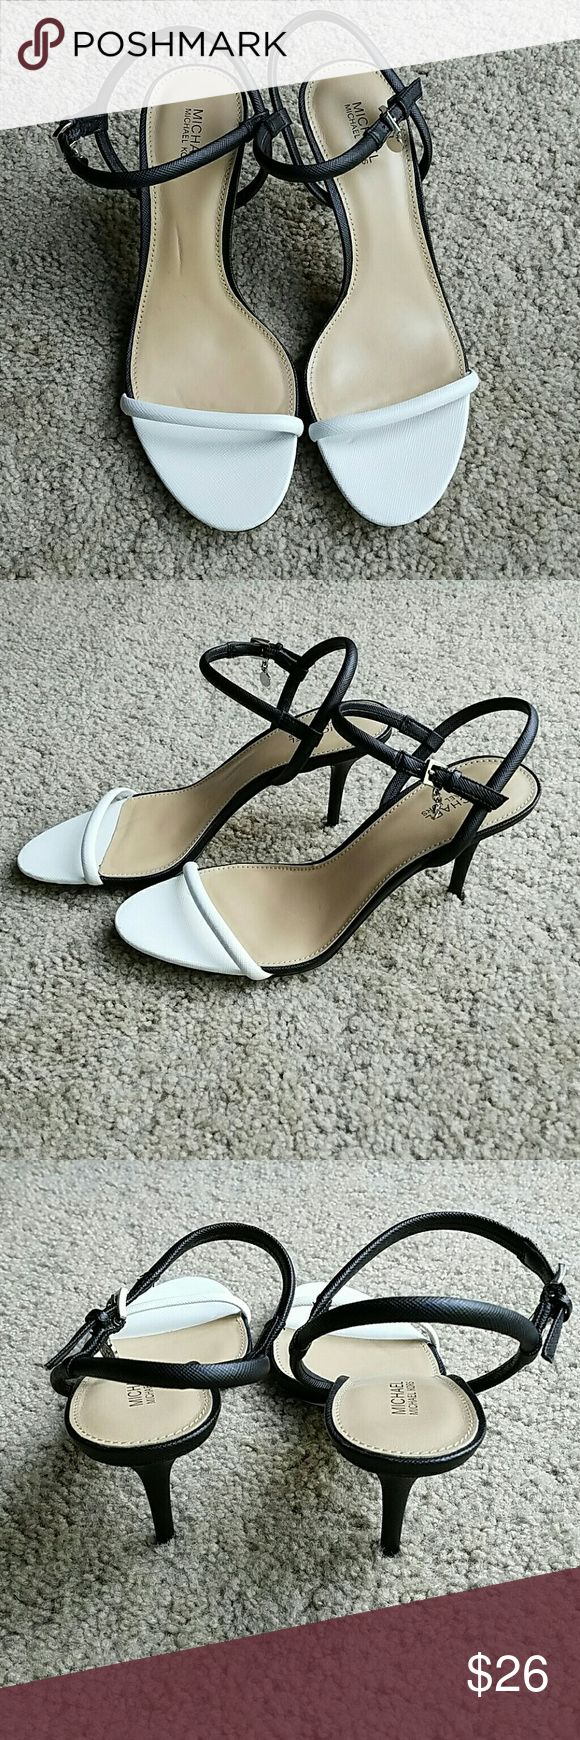 """Michael Kors Black and White Heels Re-posh because even though I love them, they're just too small! Black and white strappy heels, very elegant. As far as I know, never worn outside. Leather, silver buckle and MK logo. Heels 3"""". Length of strap over toes is only 4"""" across so measure your foot! I wear 7.5 or sometimes 8s and have very narrow feet, these are definitely too small, both in length, and width at toes. I think they may actually fit a 7 better than 7.5. Listing at price I paid…"""